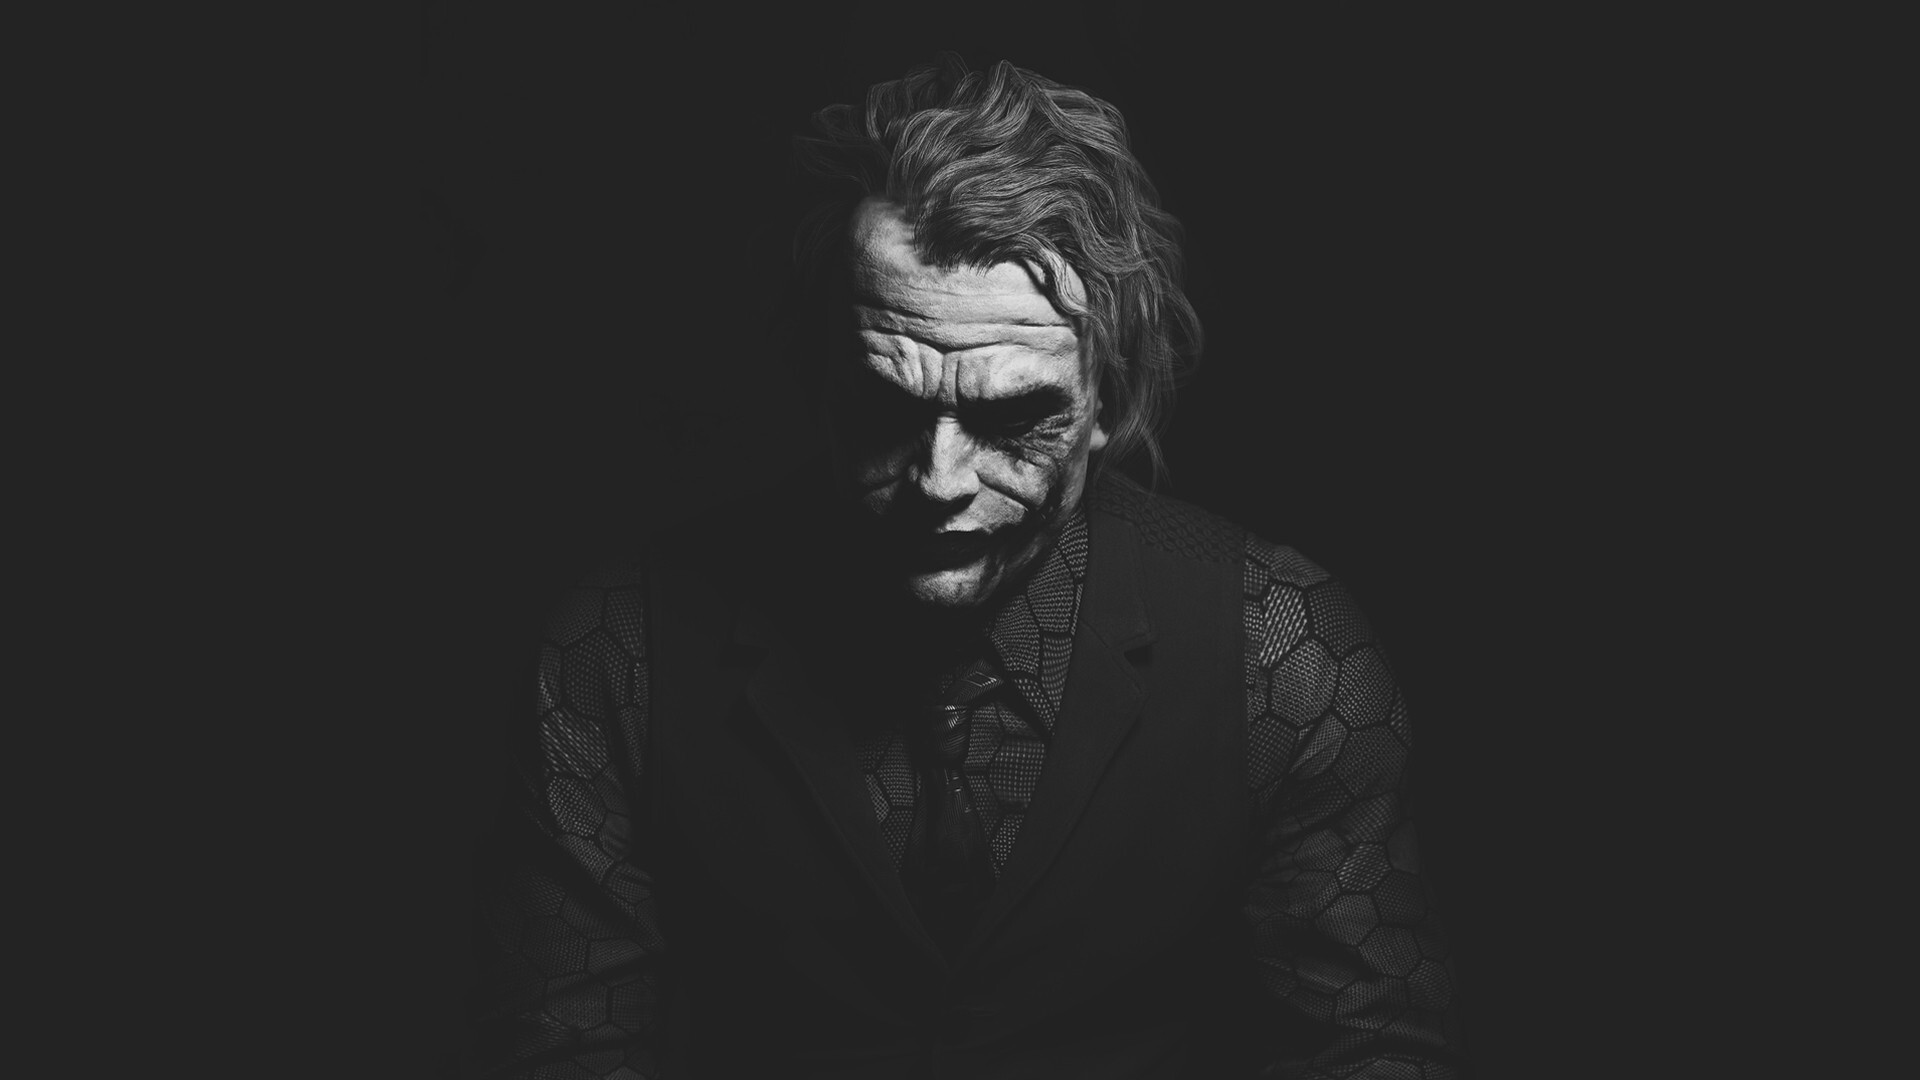 1920x1080 joker 2 laptop full hd 1080p hd 4k wallpapers, images